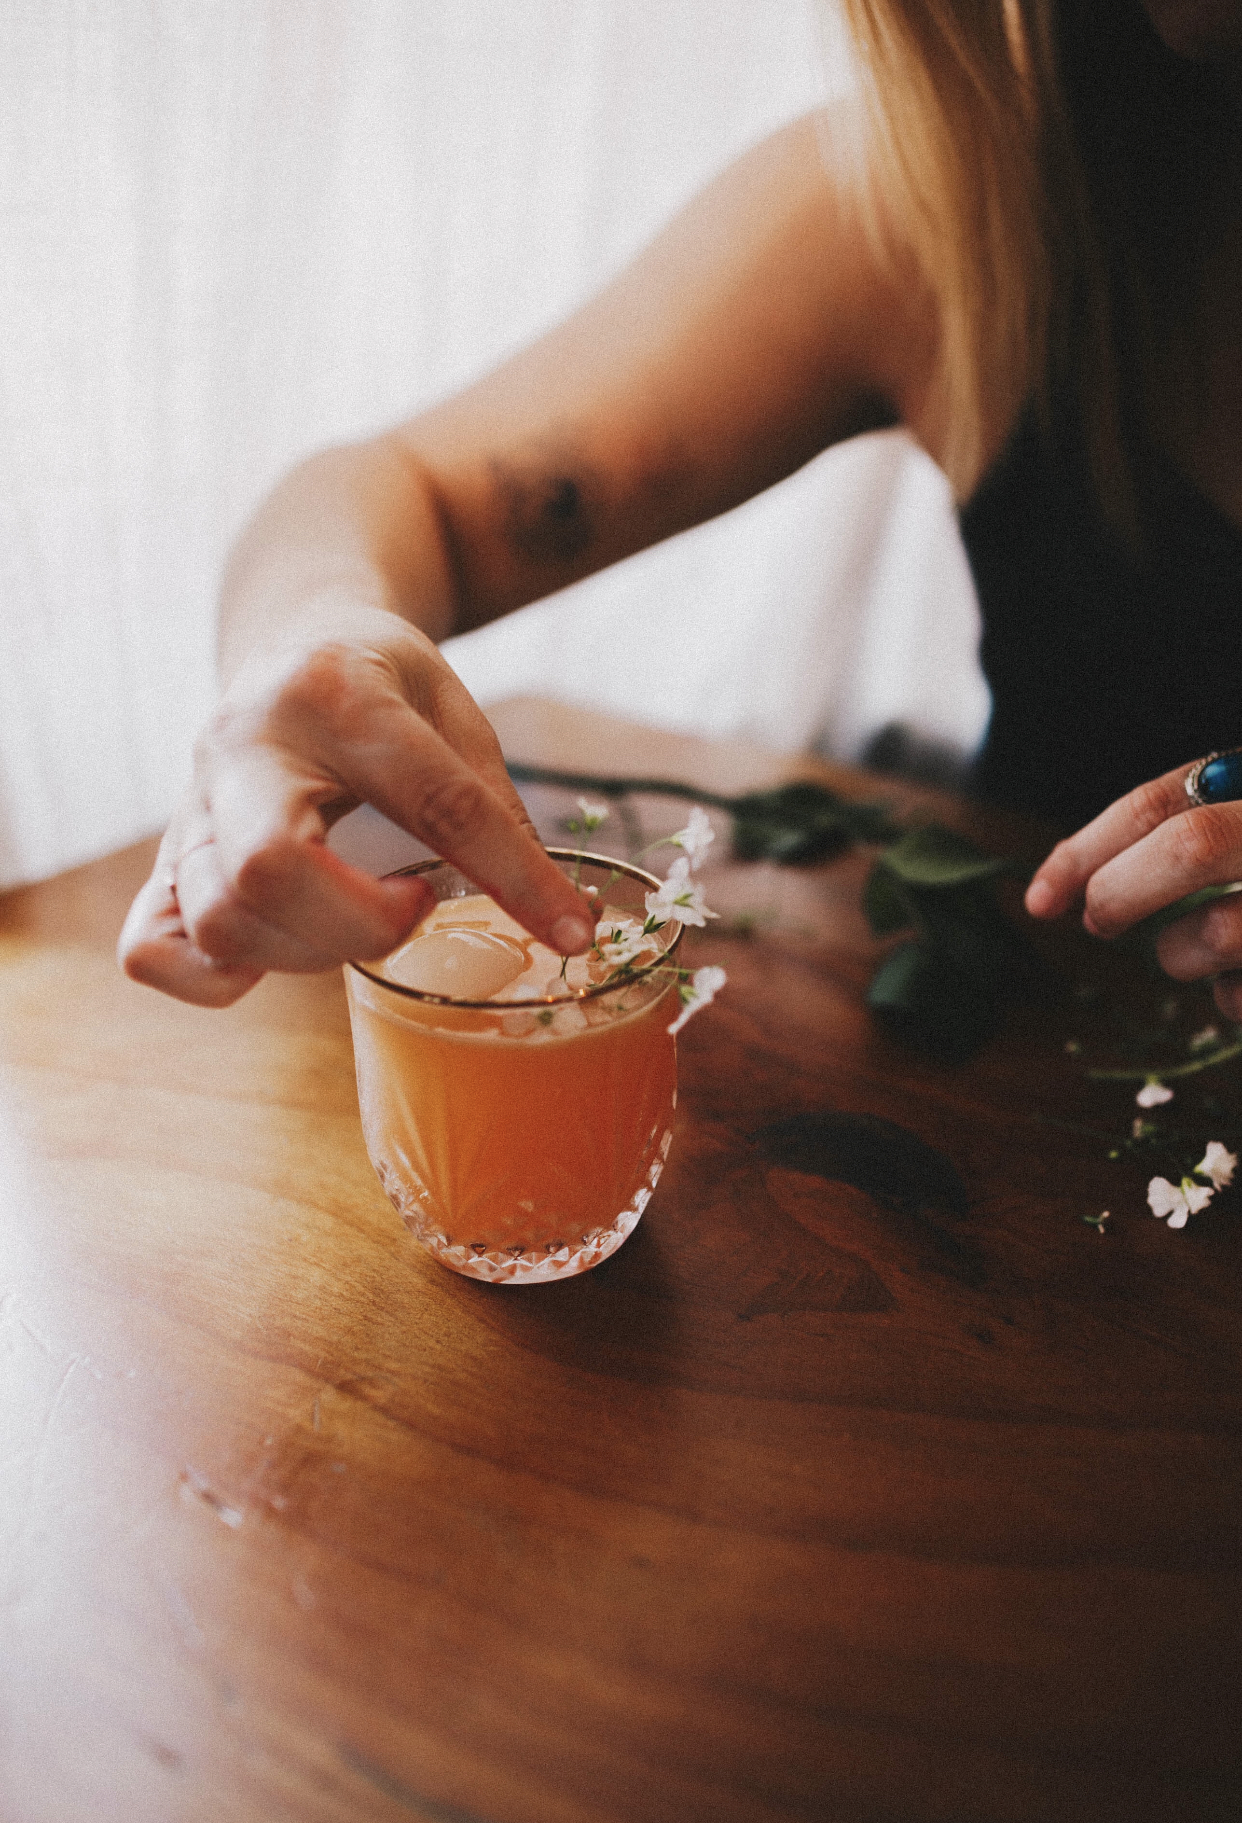 Coming Up Roses - 3 oz Lost Republic Straight Rye Whiskey2 oz Orange Juice1 oz Lemon Juice1/2 oz Simple Syrup Dash of Rose WaterCombine into shaker, shake it like a polaroid picture, add to glass with ice sphere or cubes. Sip while playing croquet at your parent's summer home in the Hamptons. If you don't have access to one of those, your backyard will suffice!